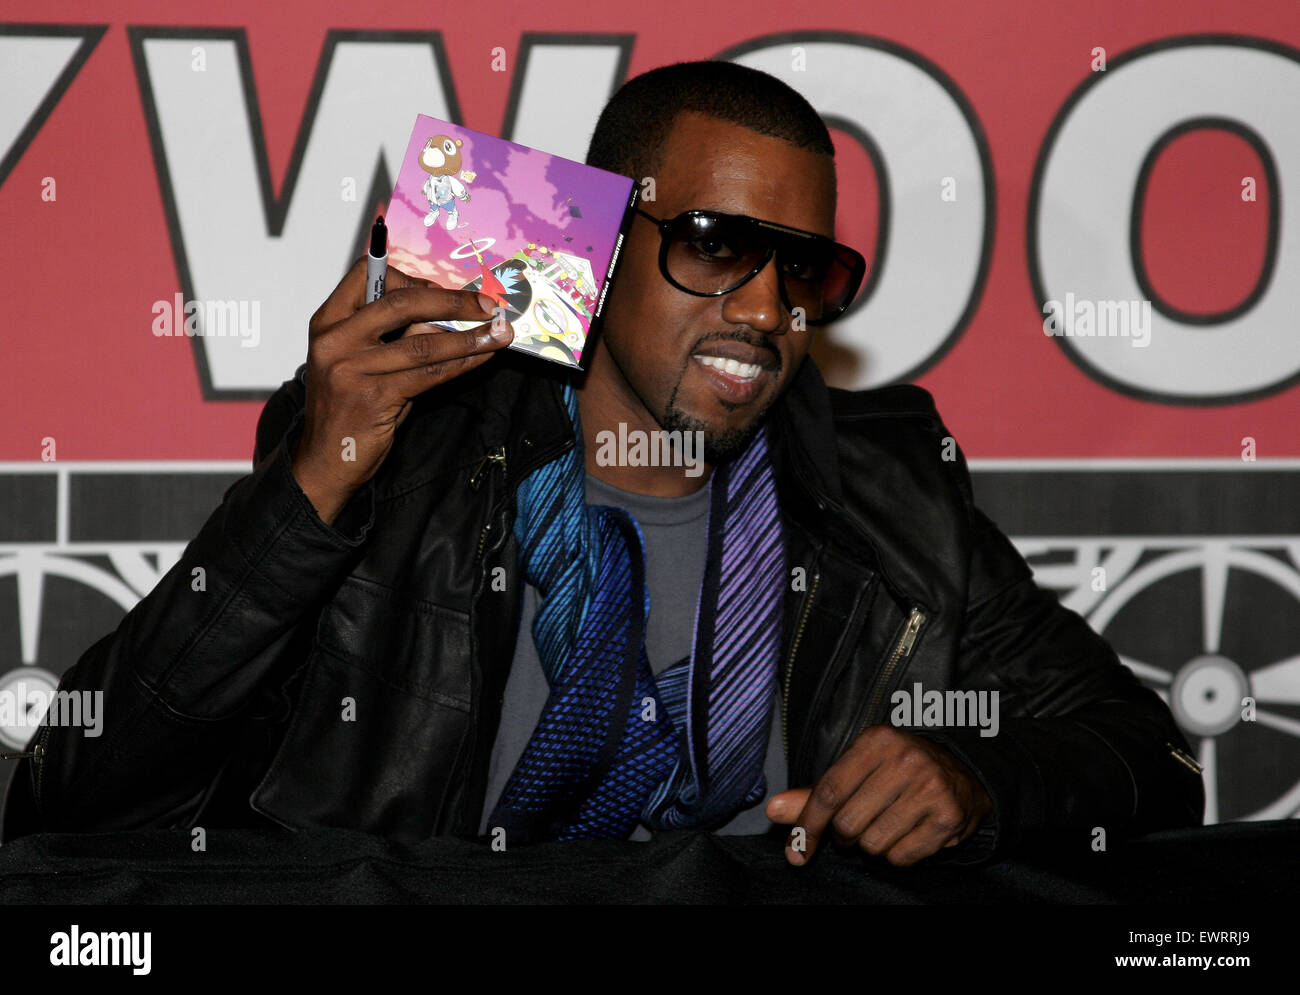 Kanye West attends the in-store signing of his new release 'Graduation' - Stock Image